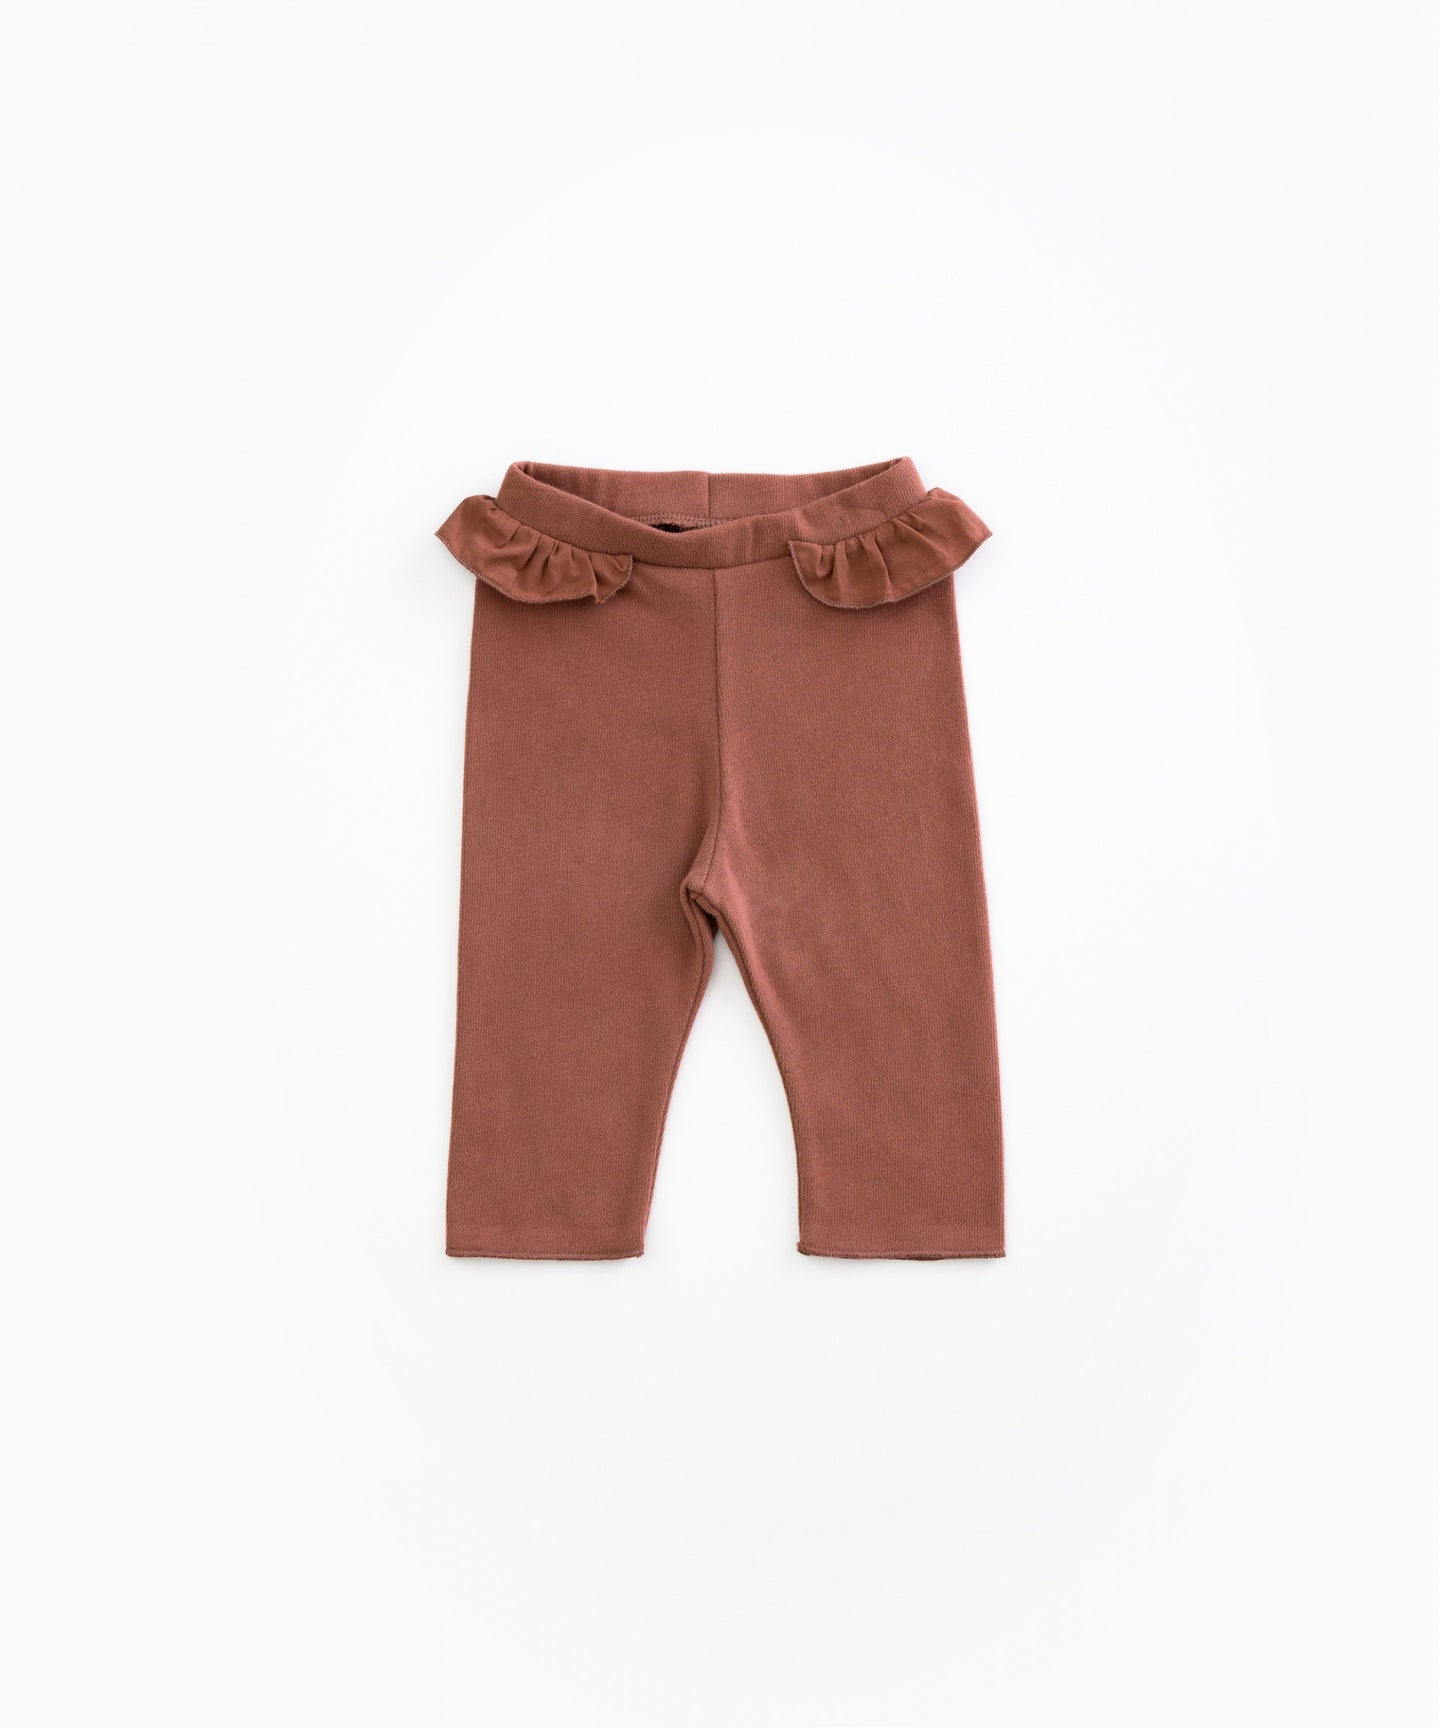 Play Up - Organic Cotton Leggings W/ Frill - Takula